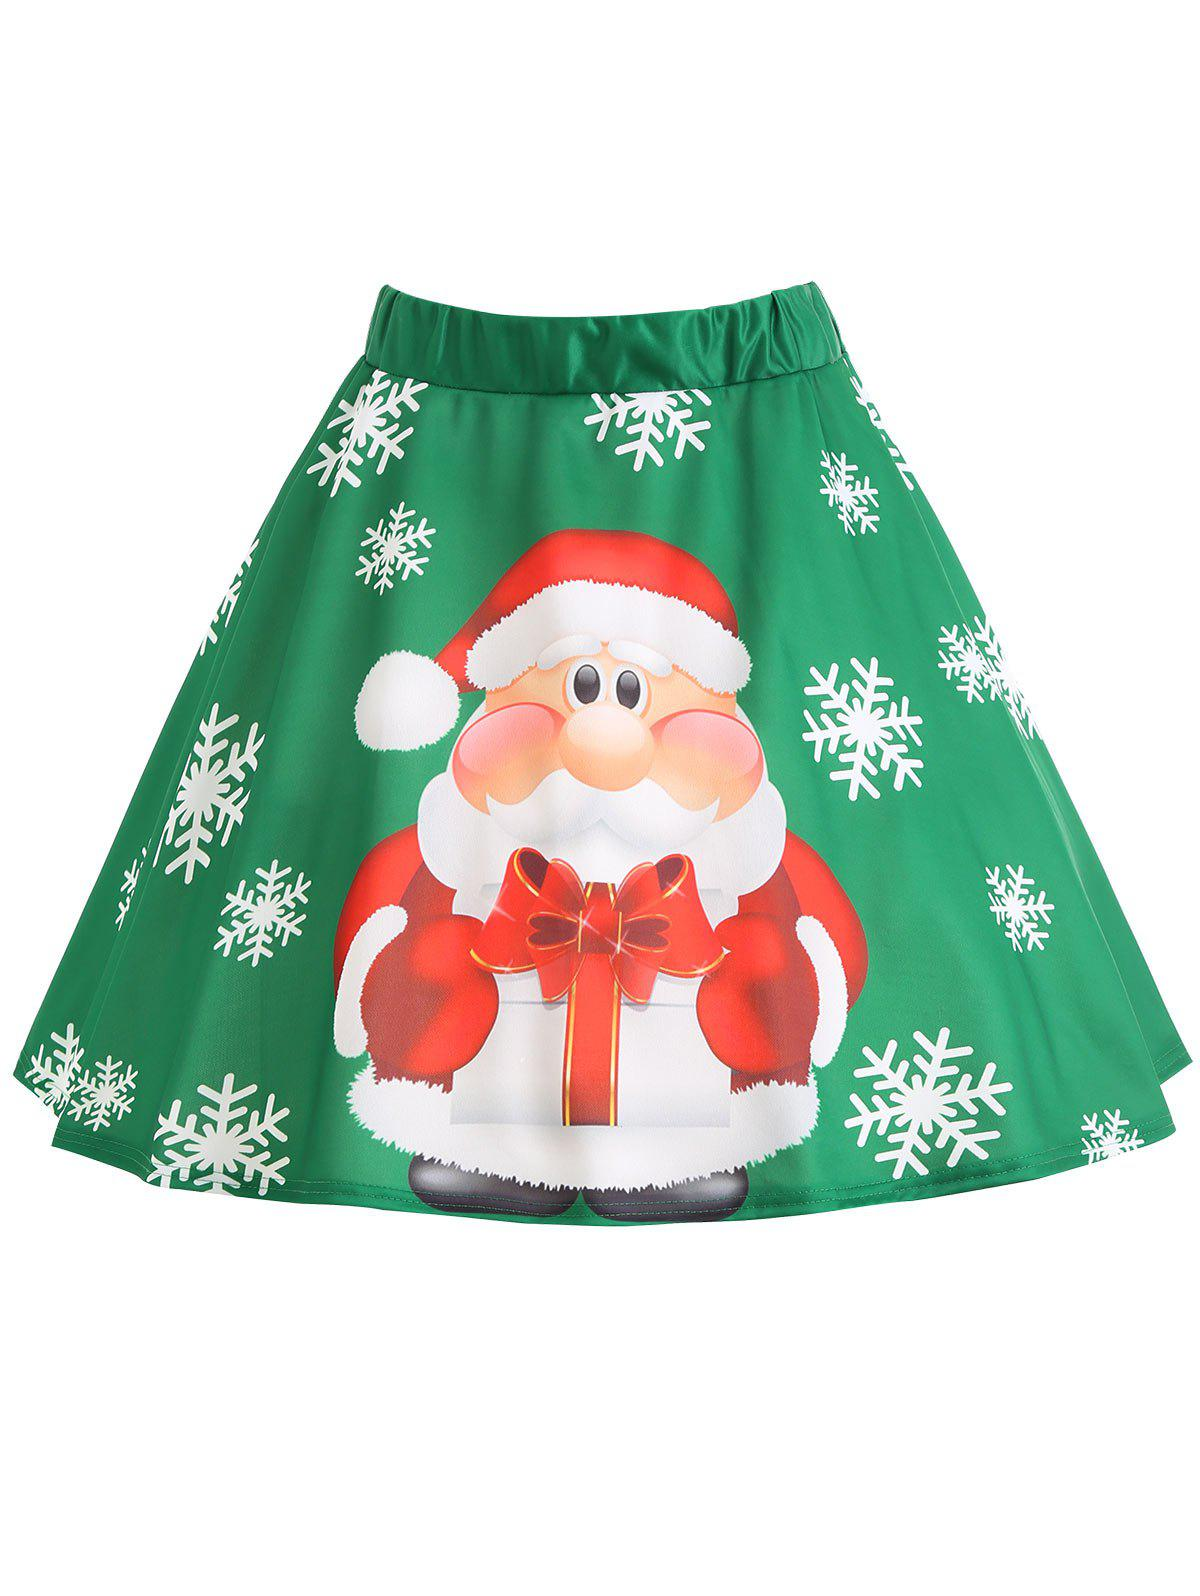 Plus Size Christmas Santa Claus Snowflake SkirtWOMEN<br><br>Size: 4XL; Color: GREEN; Material: Polyester; Length: Mini; Silhouette: A-Line; Pattern Type: Print; Season: Winter; With Belt: No; Weight: 0.2600kg; Package Contents: 1 x Skirt;